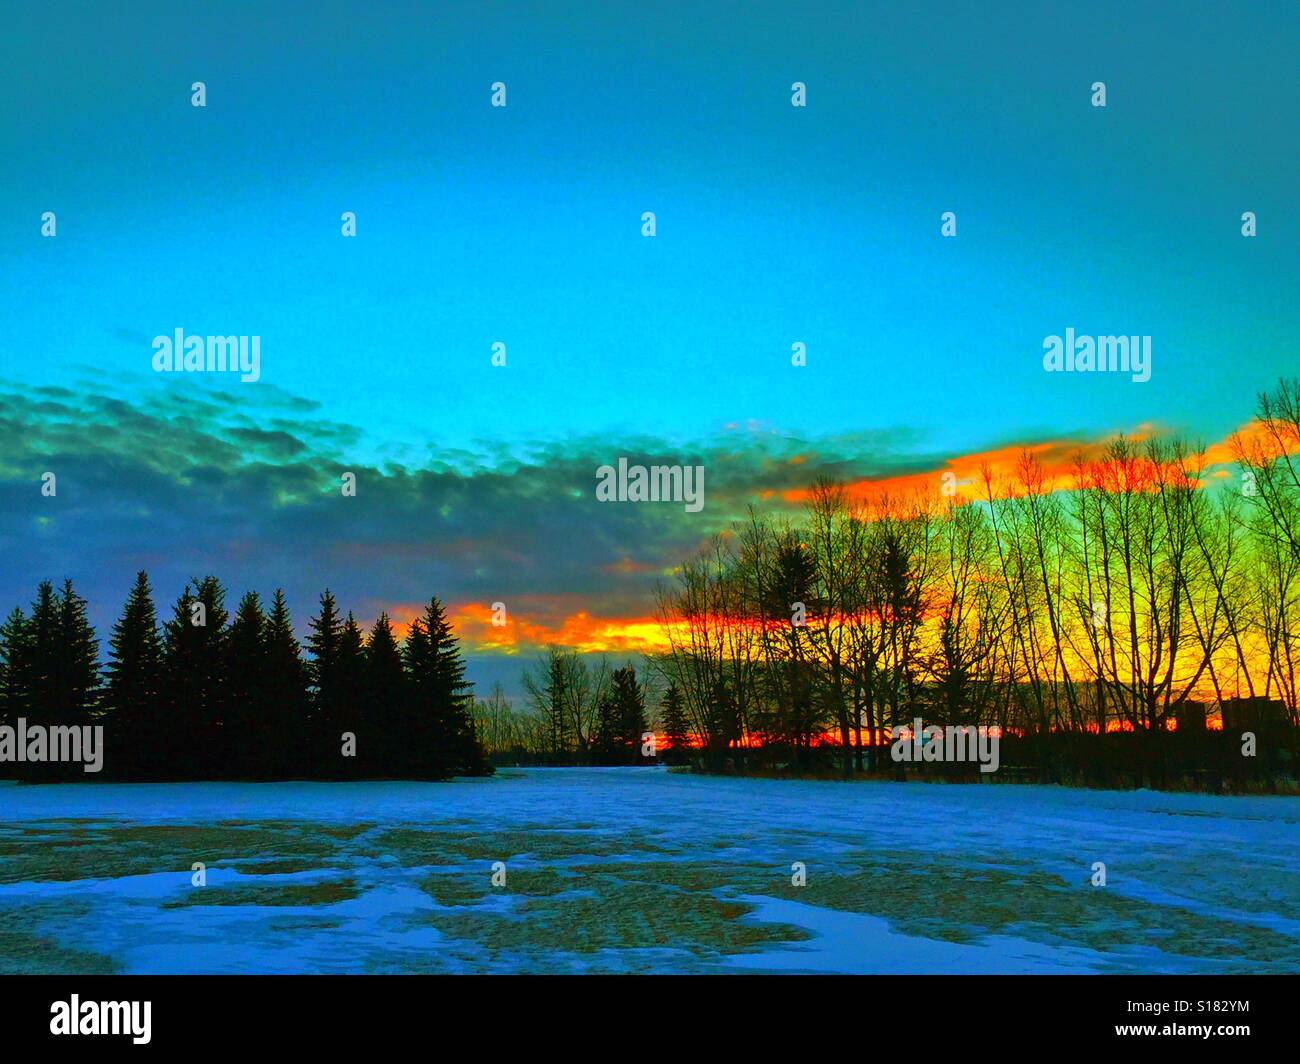 Snow on the ground with evergreens and leafless poplar trees and a winter sunrise - Stock Image